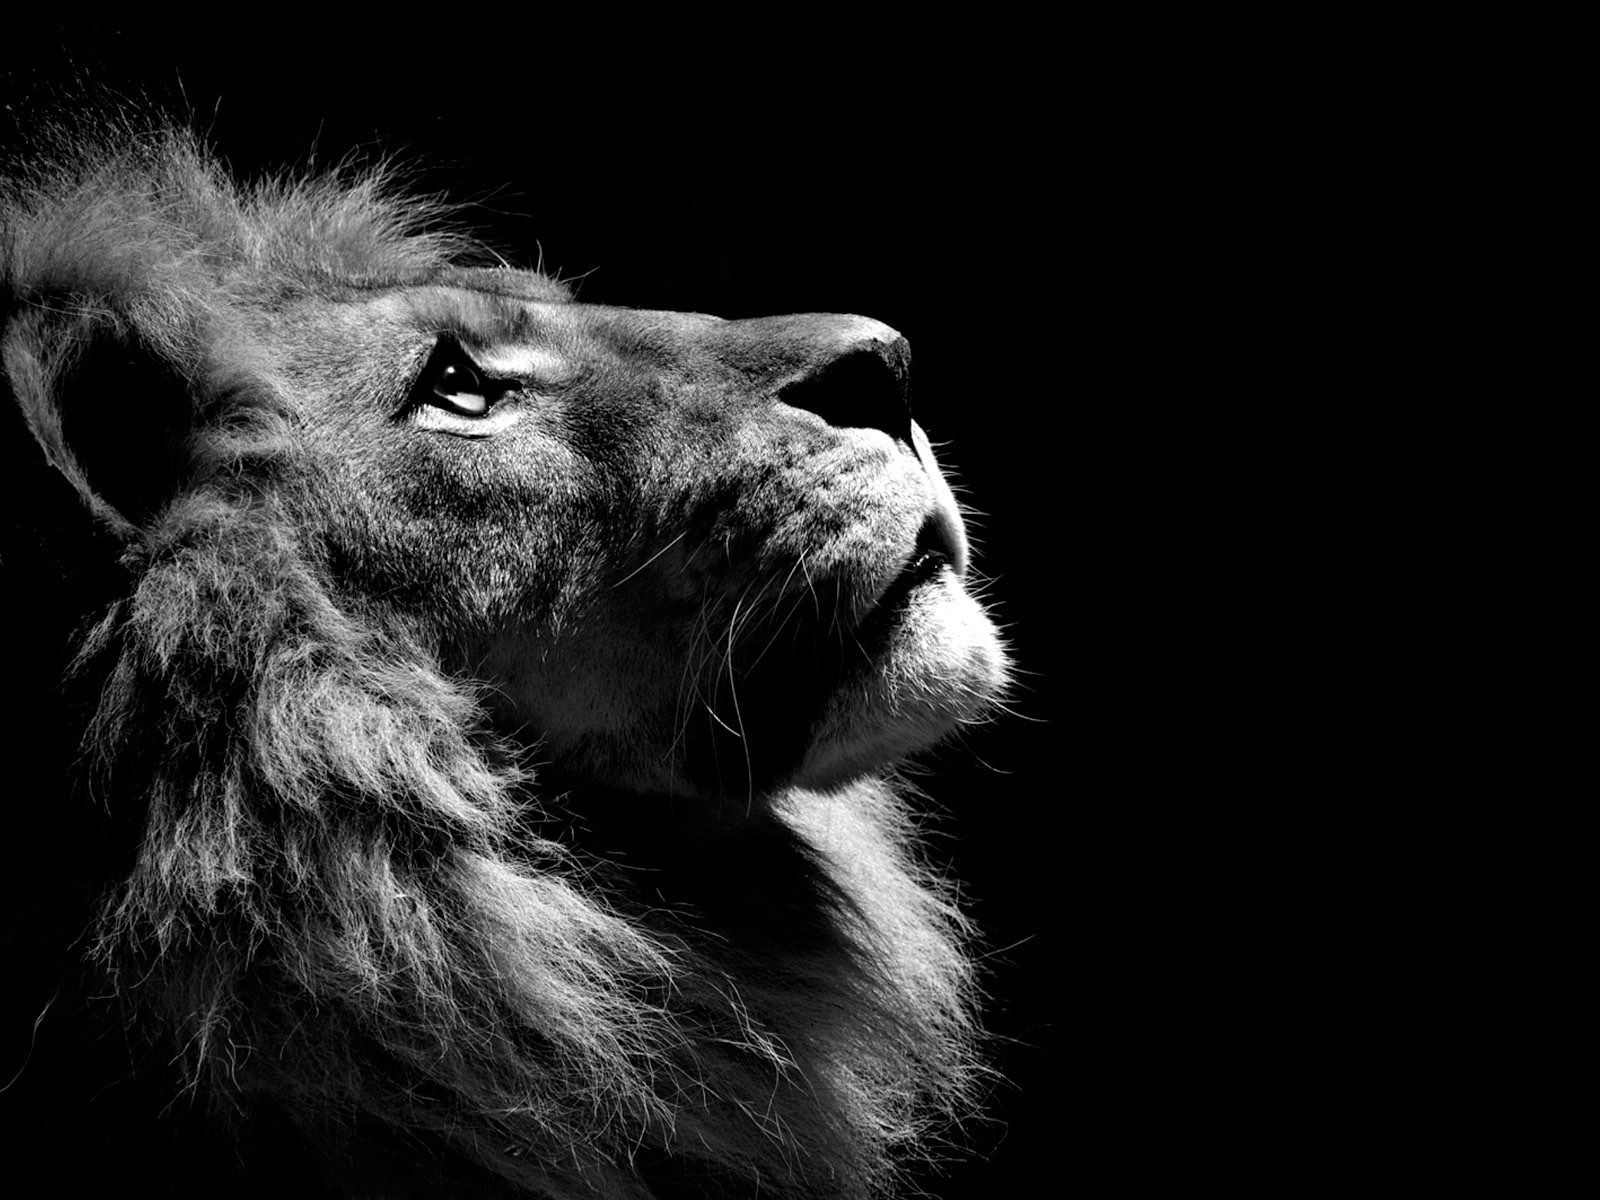 Lion images black and white